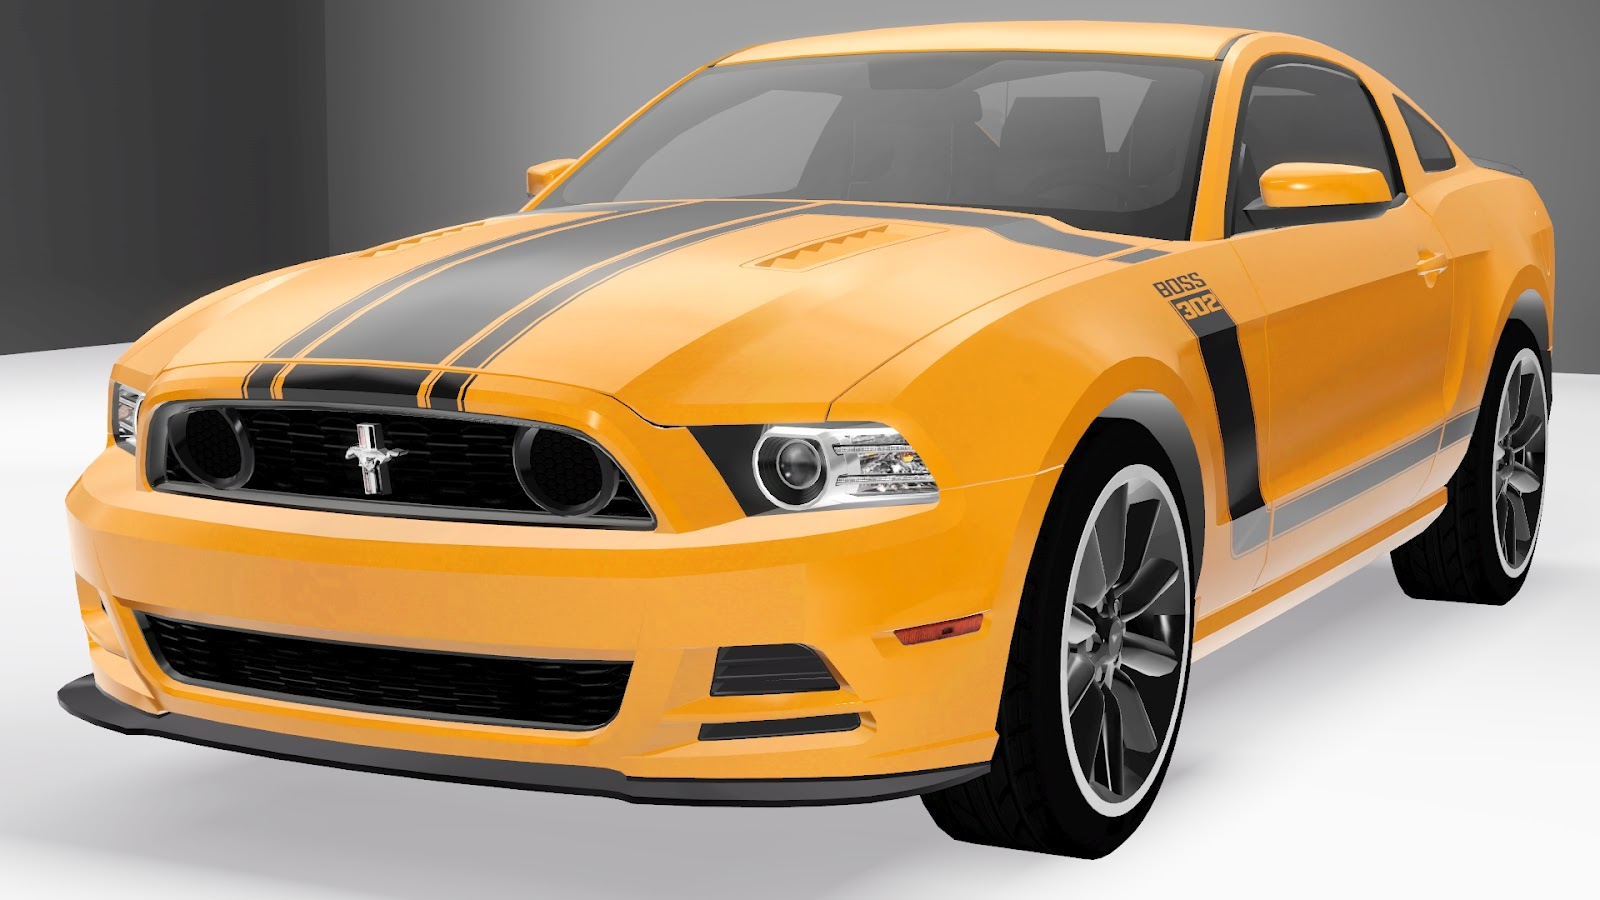 My Sims 3 Blog: 2013 Ford Mustang Boss 302 by Fresh-Prince